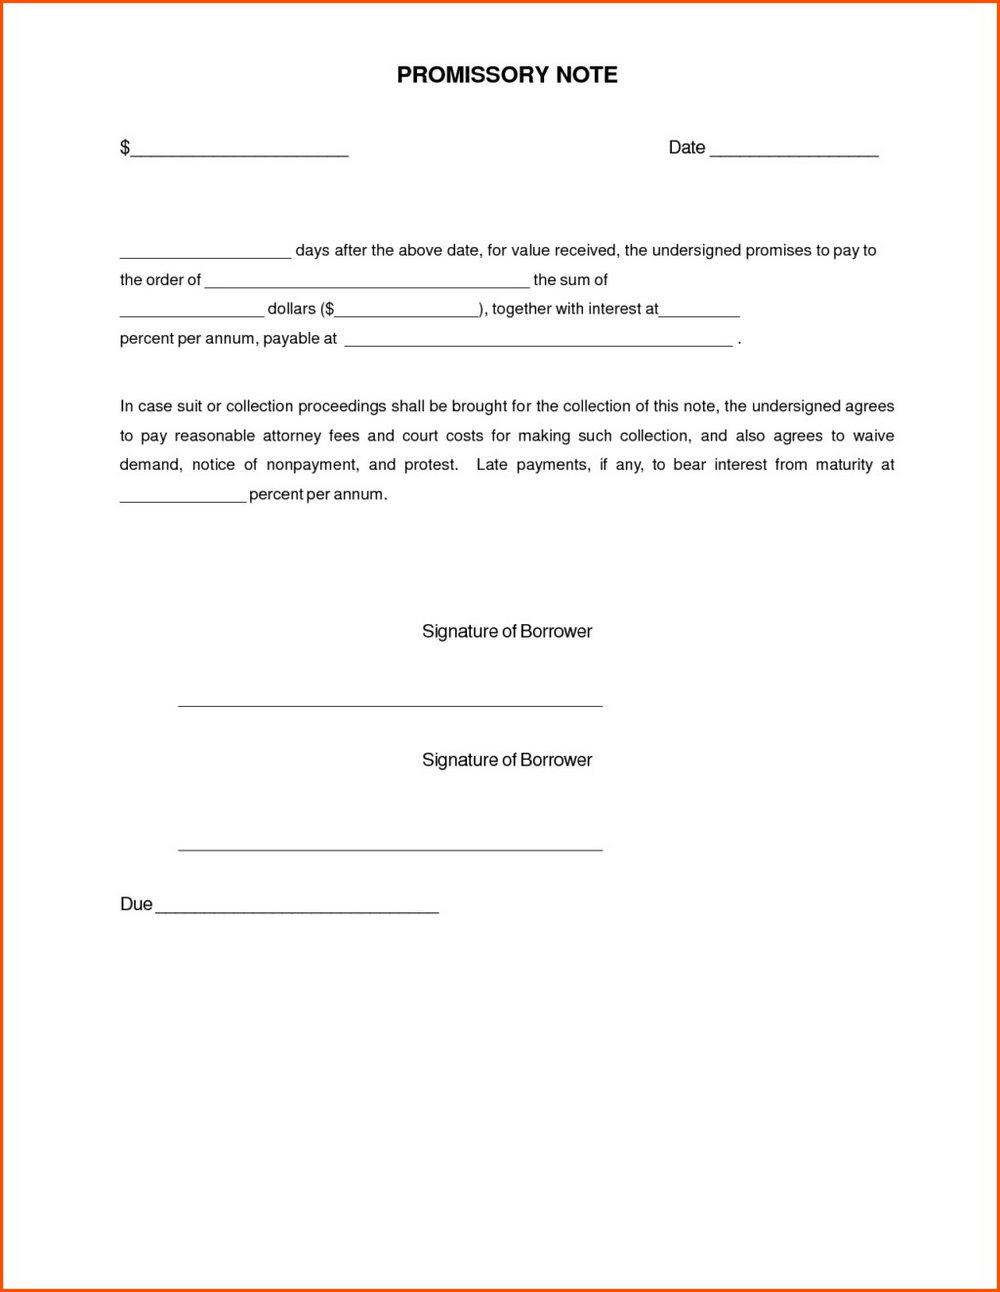 promissory-note-format-philippines Tamil Resume Format Pdf on templates free, for good, for government jobs,